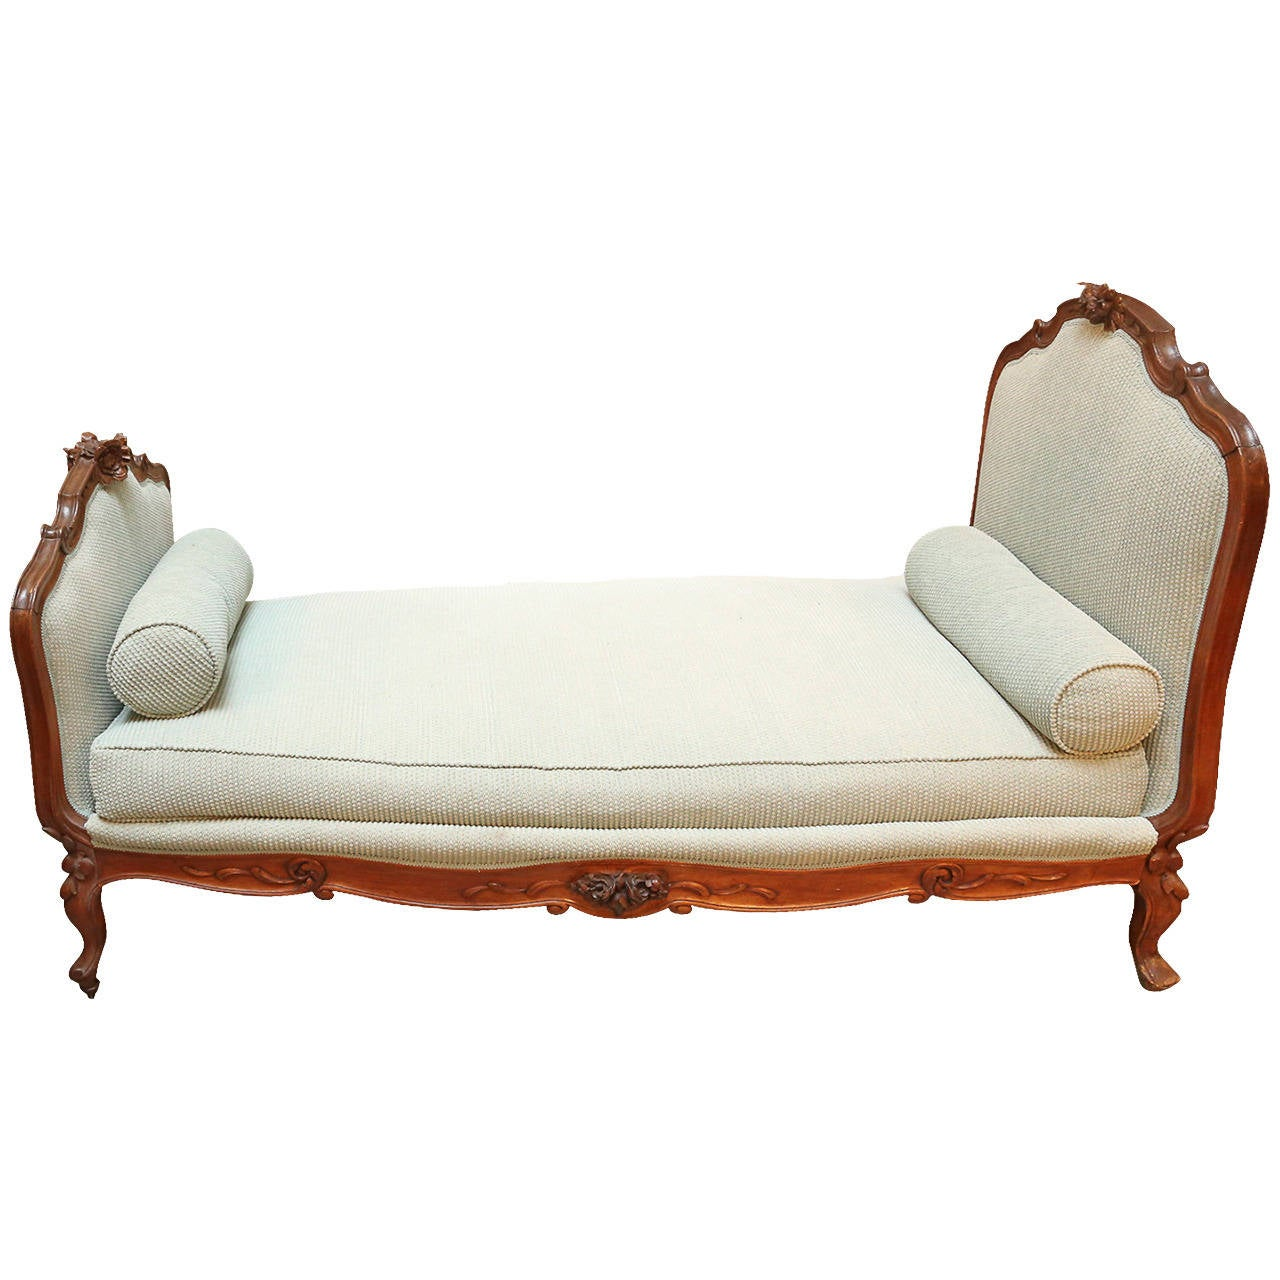 Antique Walnut French Daybed single bed or deep sofa at 1stdibs